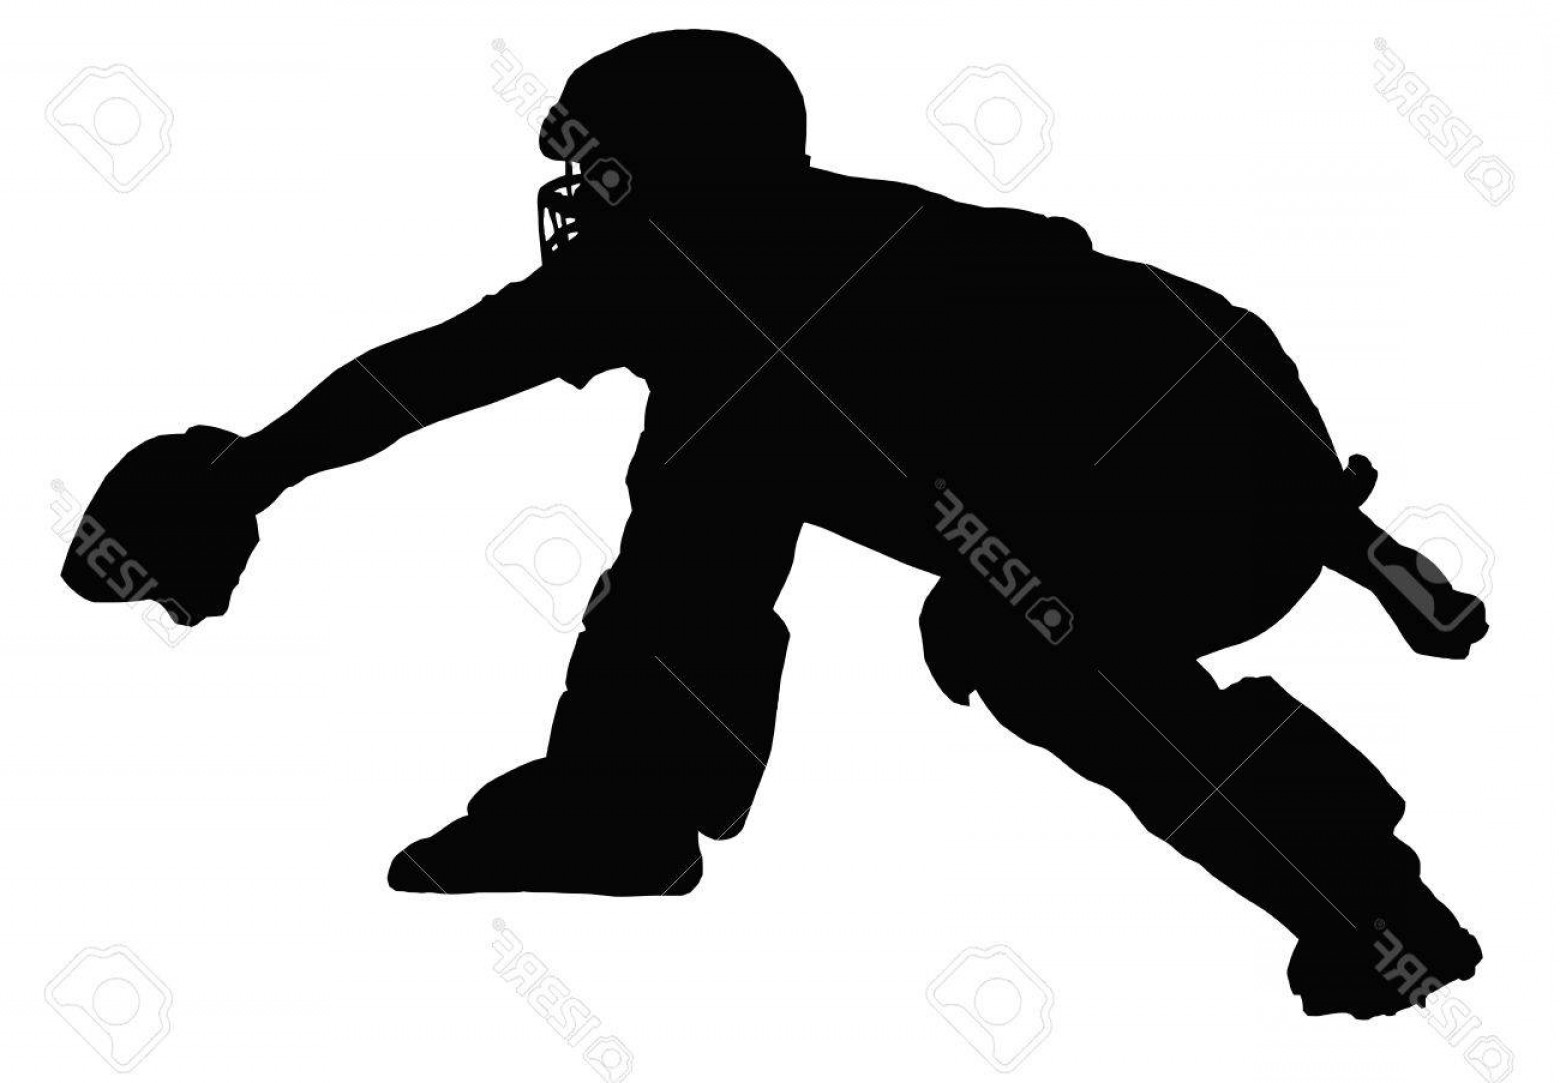 Baseball Catcher Silhouette Vector: Photopadded Baseball Catcher Calling And Awaiting Delivery